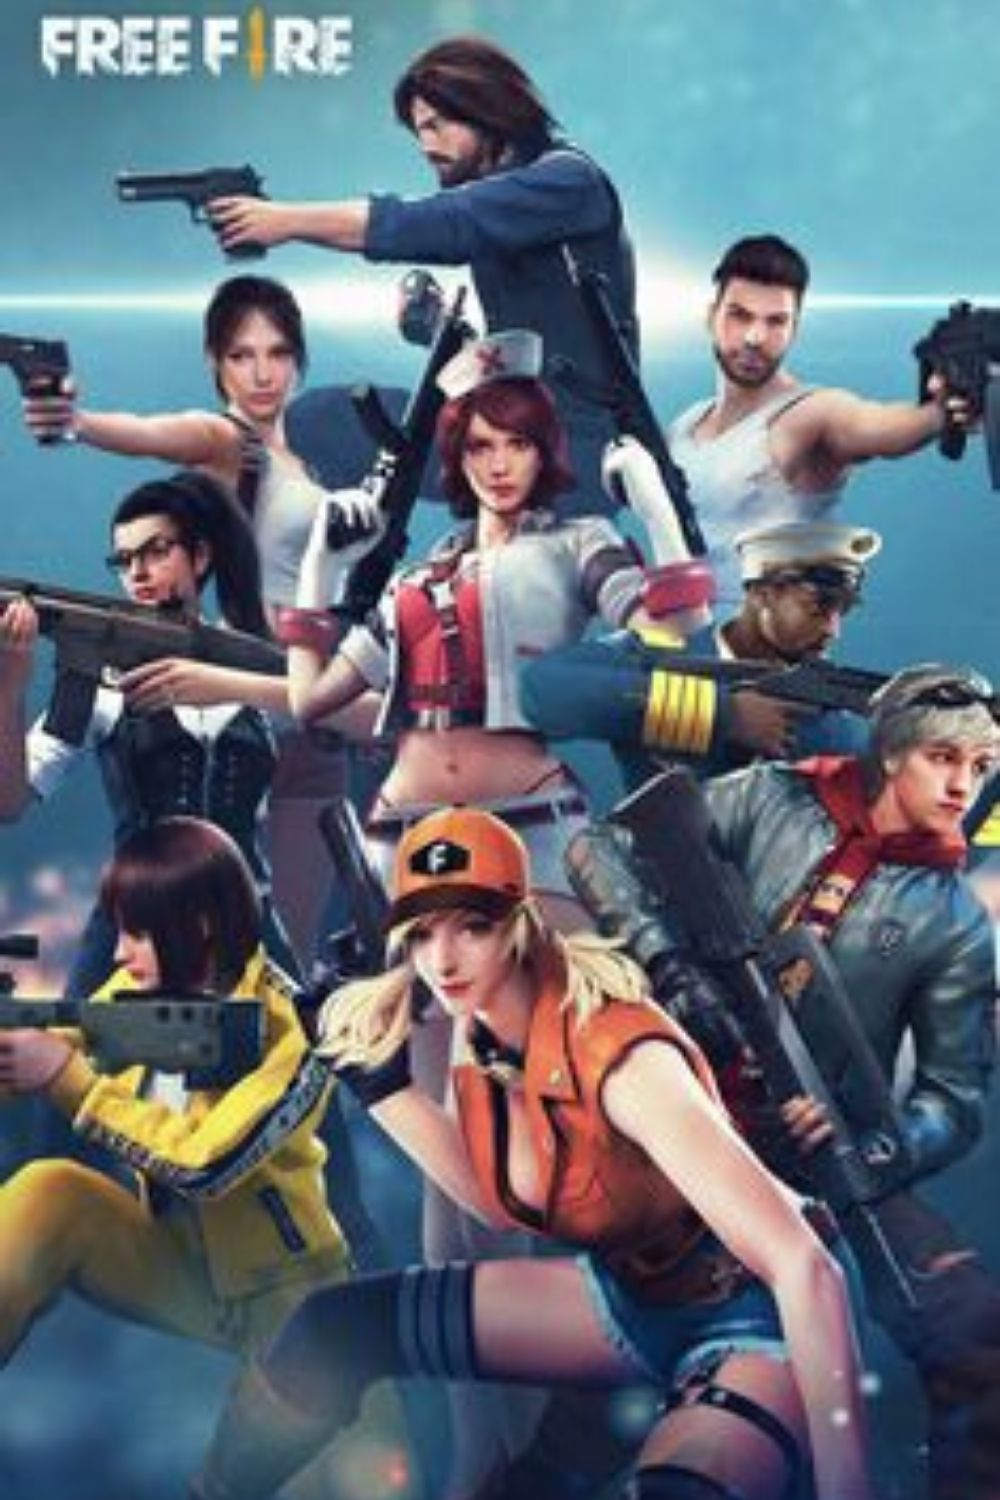 Garena Free Fire Battlegrounds is a popular mobile game